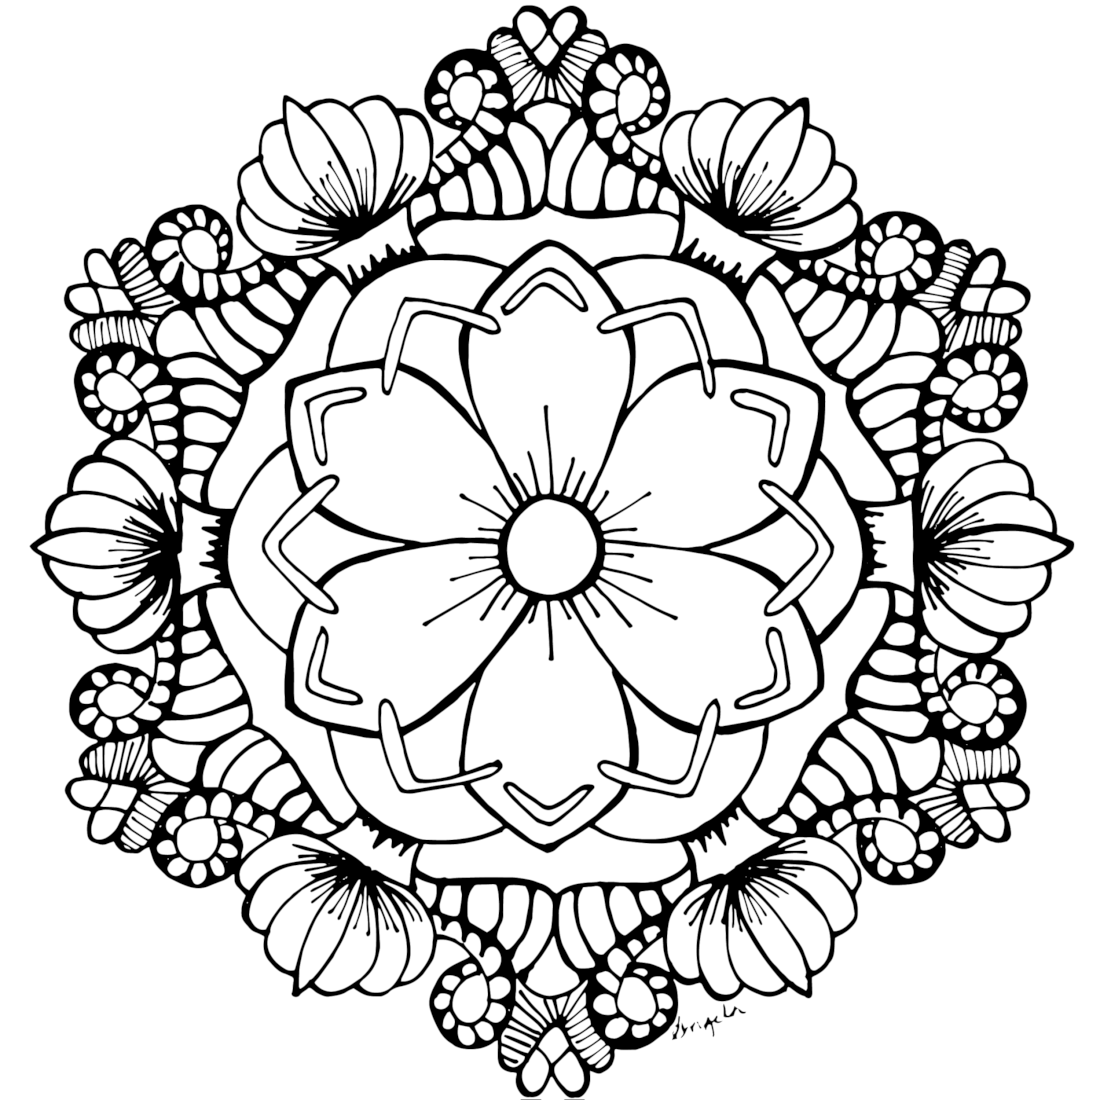 pretty pictures to color coloring pages for girls best coloring pages for kids pictures pretty color to